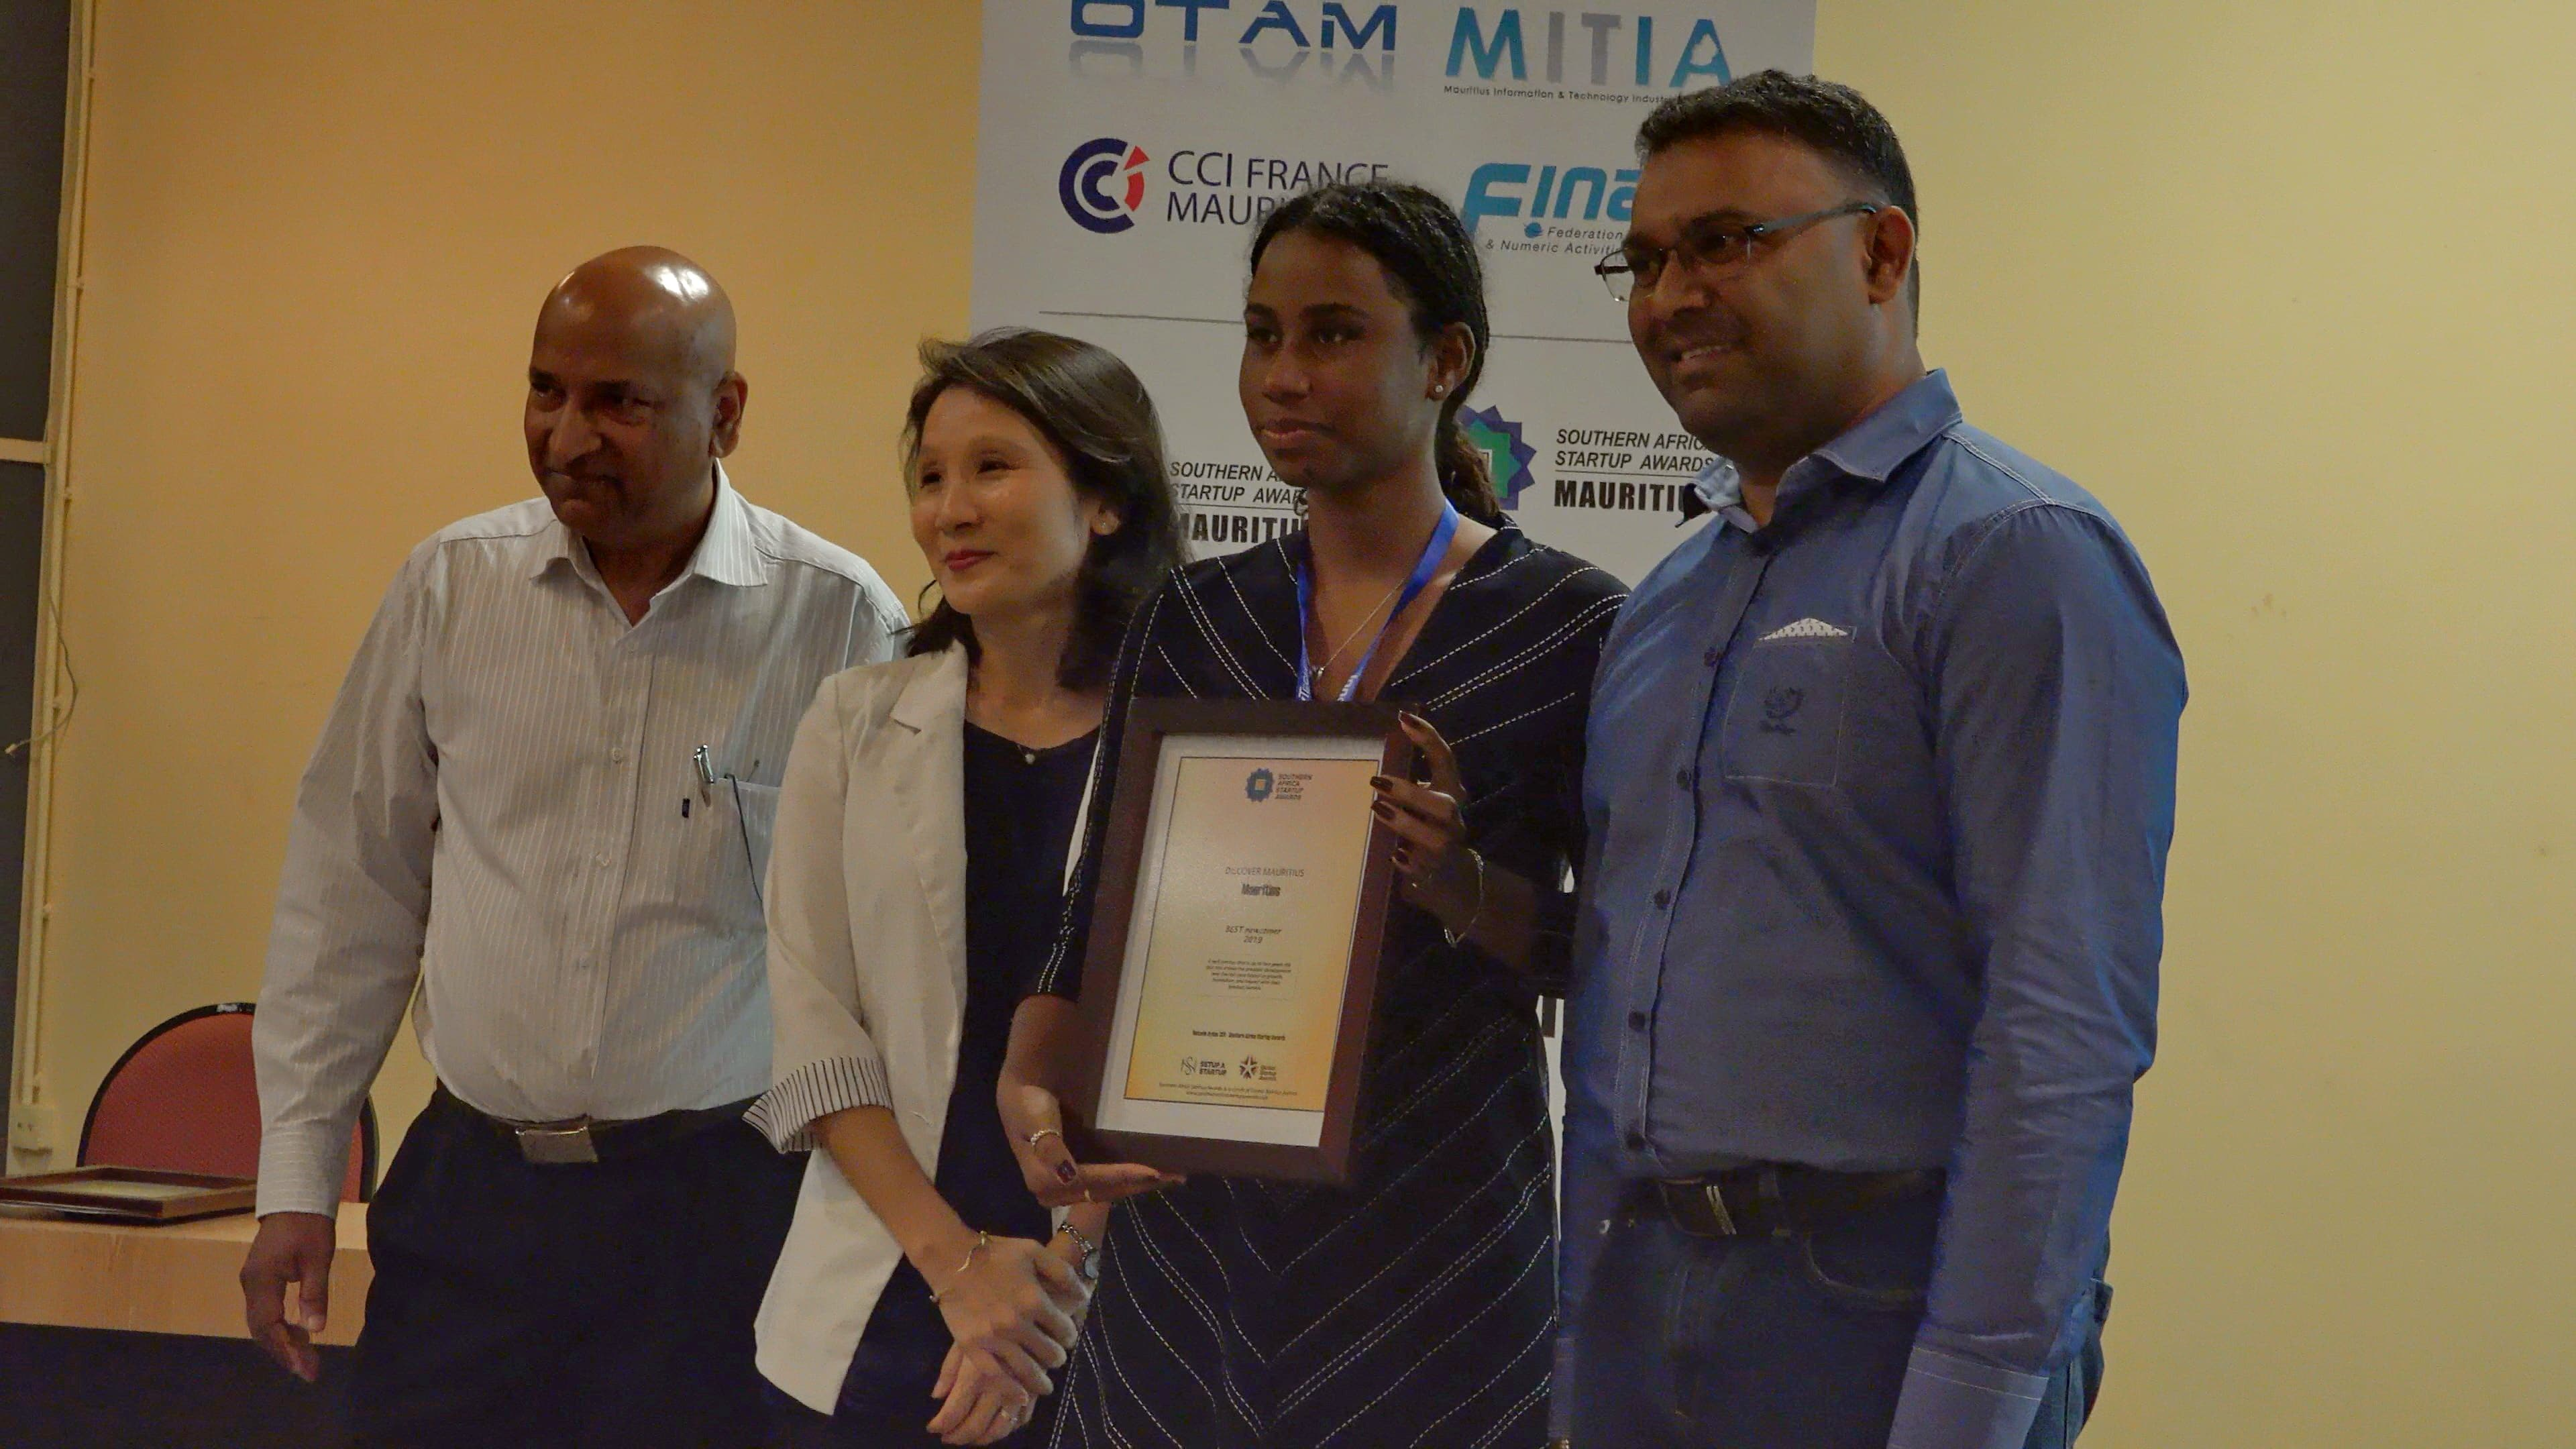 4. Best New Comer of the Year – DiscoverMauritius